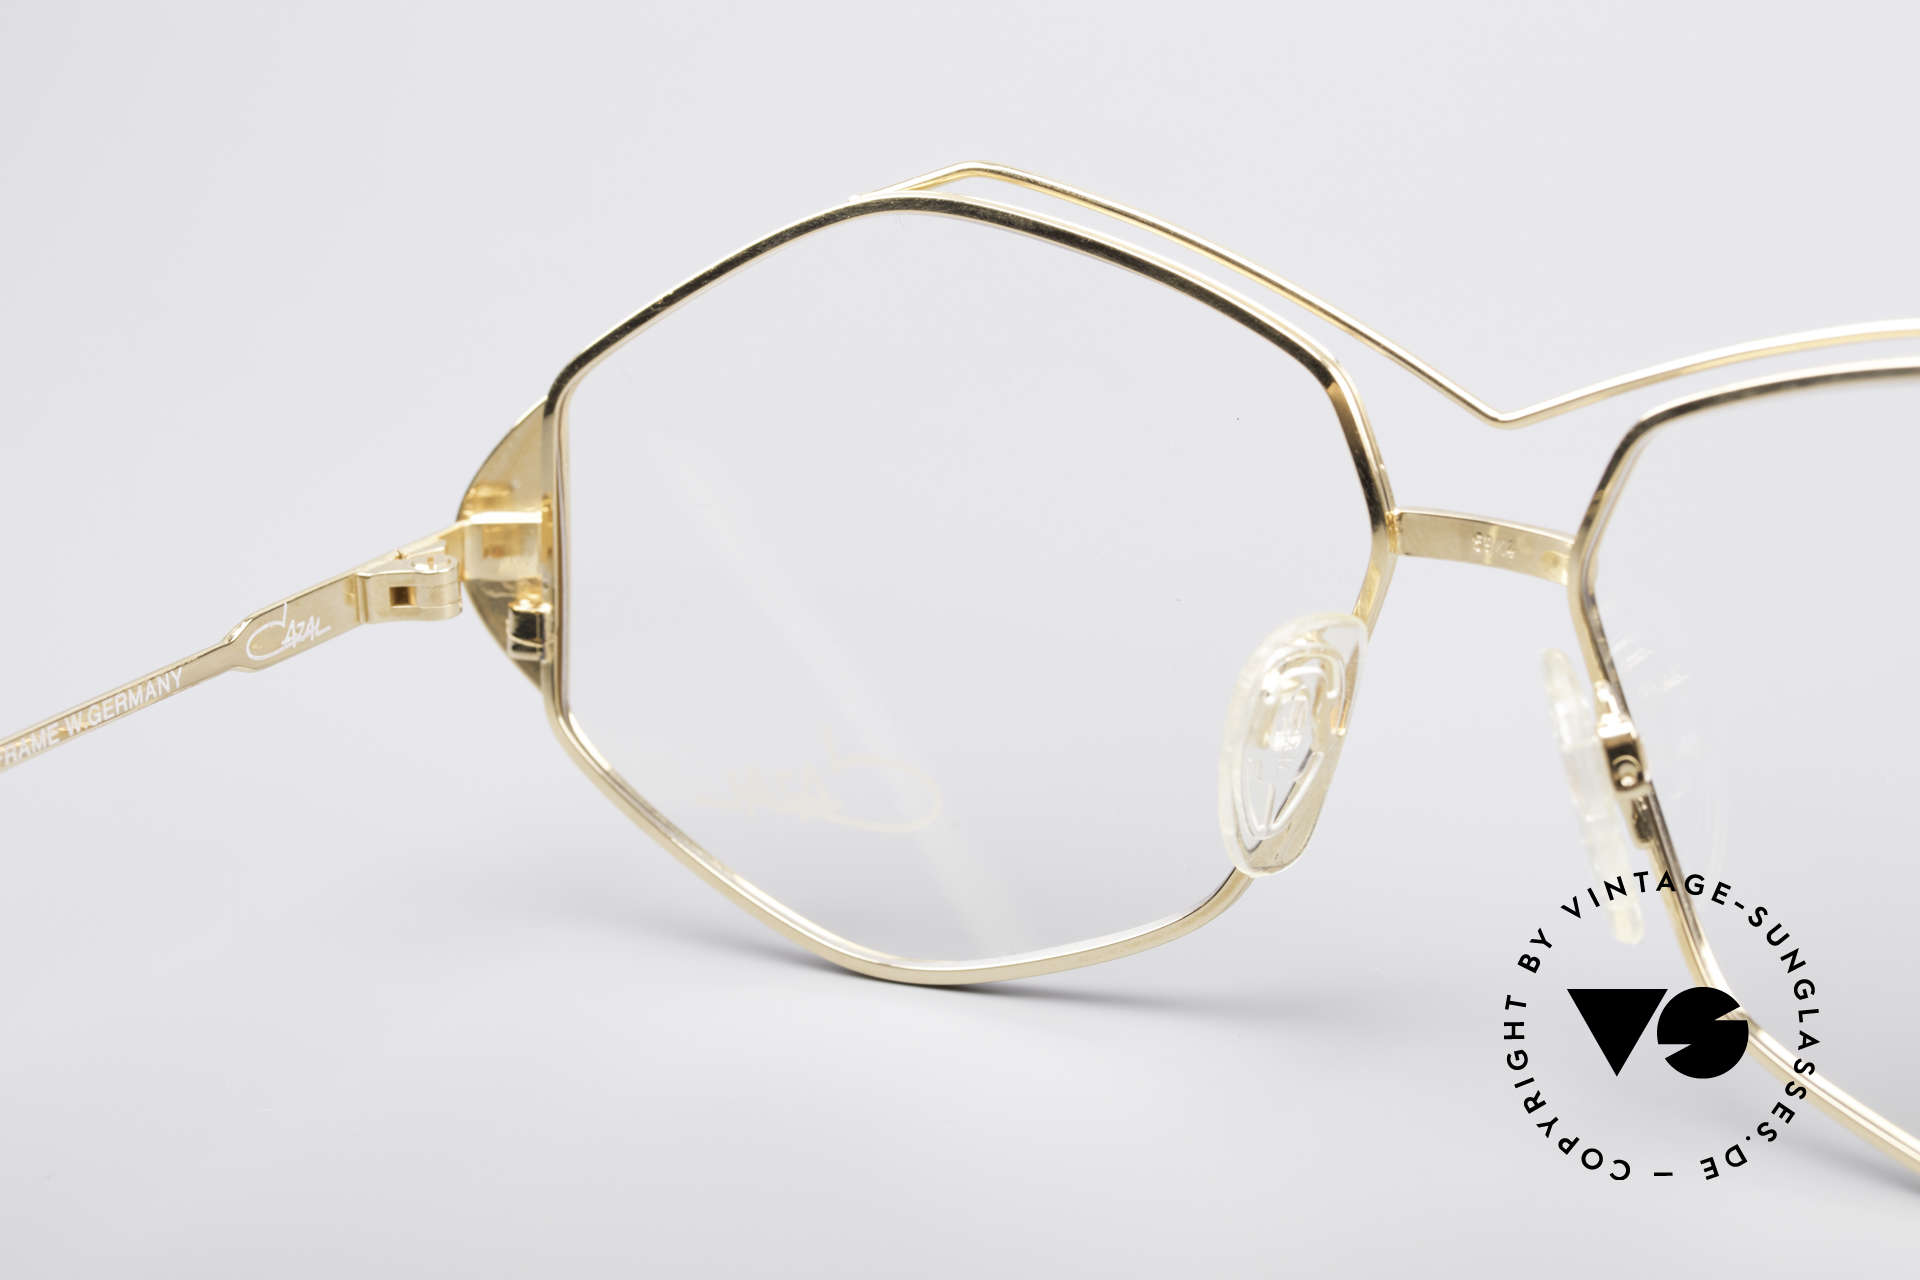 Cazal 233 Vintage West Germany Frame, frame is made for lenses of any kind (optical/sun), Made for Women